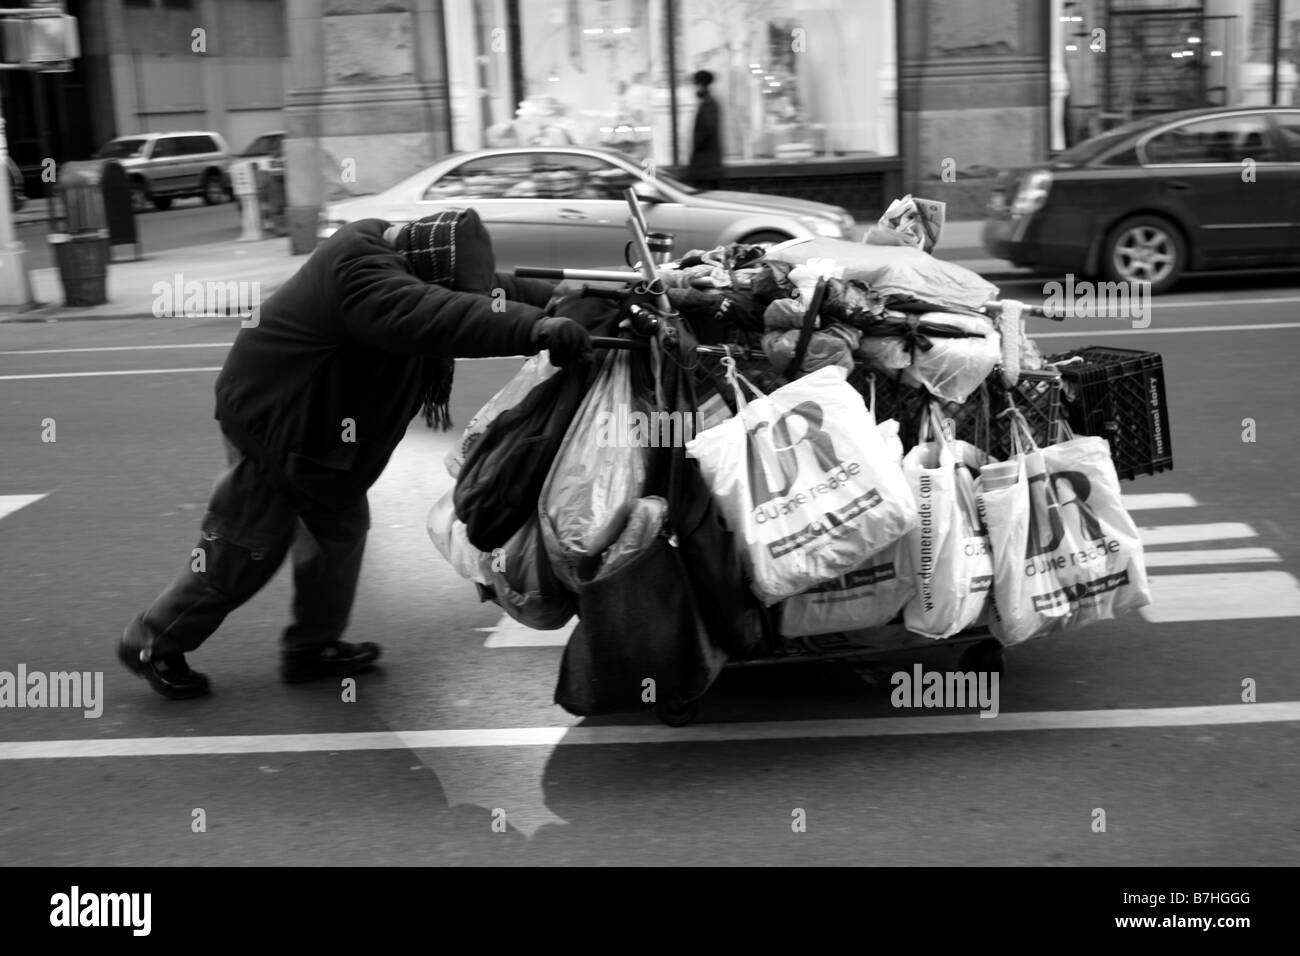 A Bag Lady in New York. - Stock Image